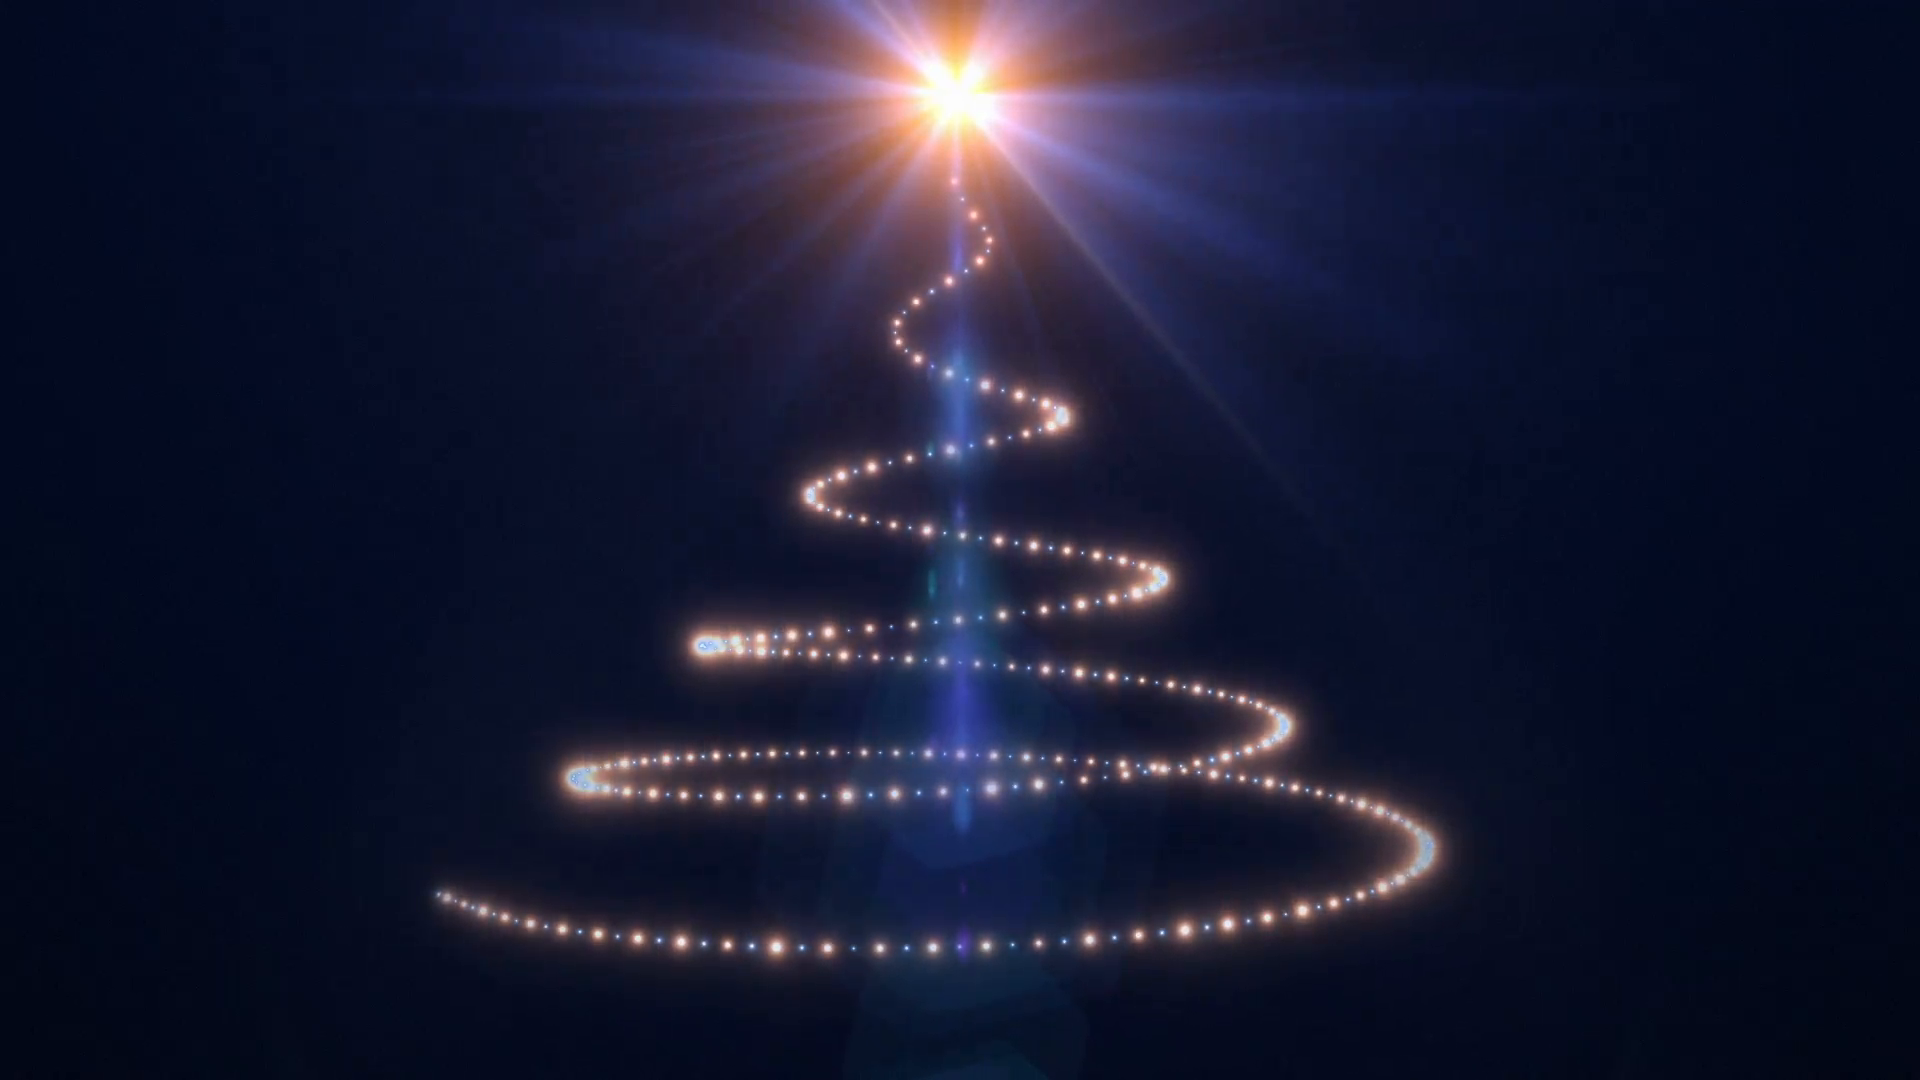 Light flare png christmas. Holiday lights forming a